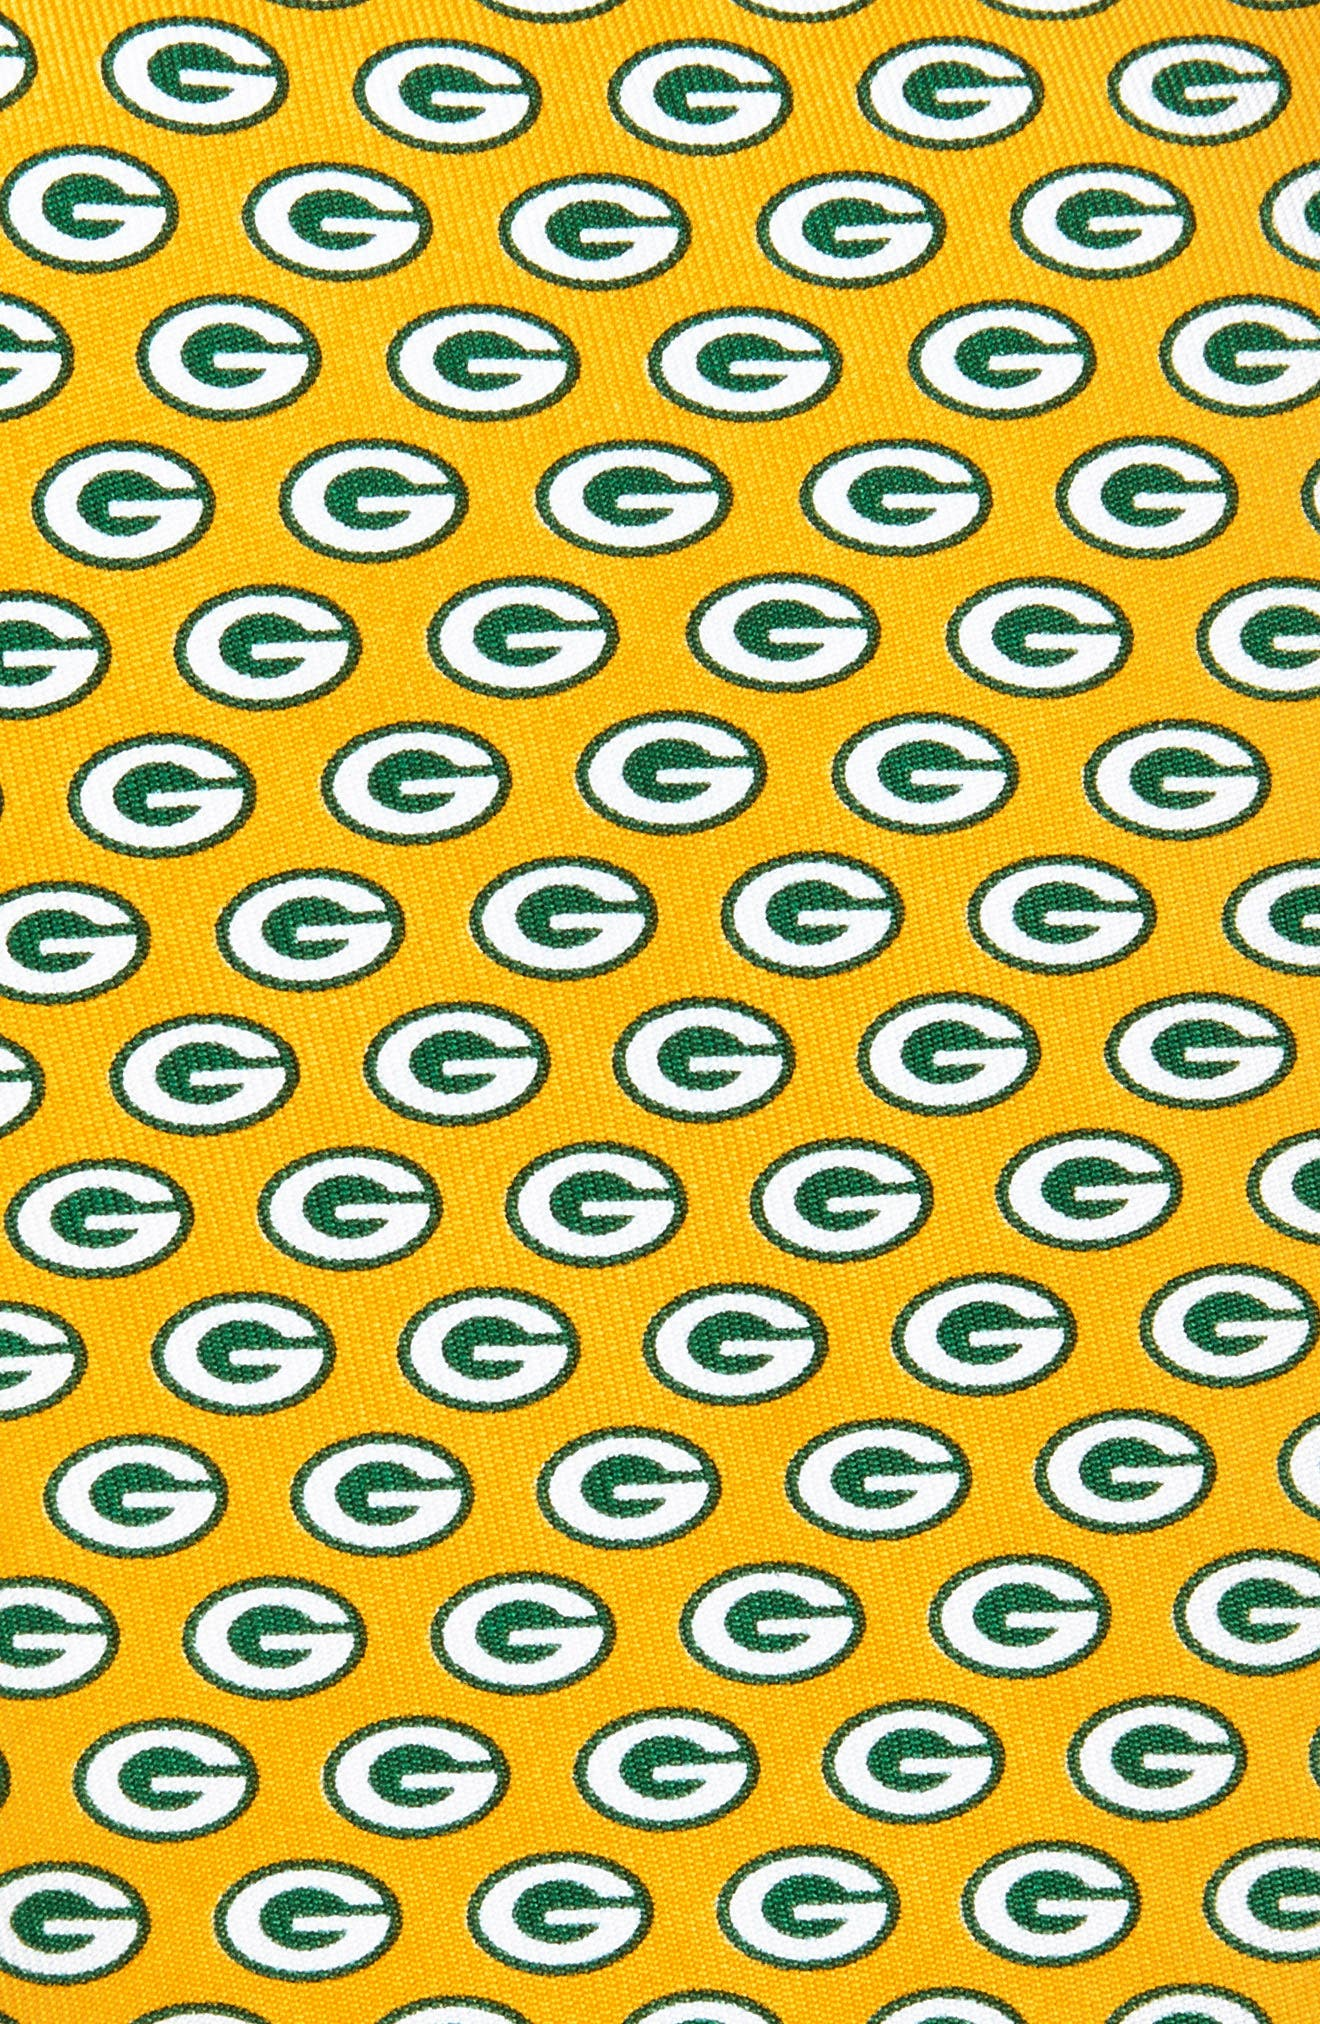 Green Bay Packers - NFL Woven Silk Tie,                             Alternate thumbnail 3, color,                             YELLOW